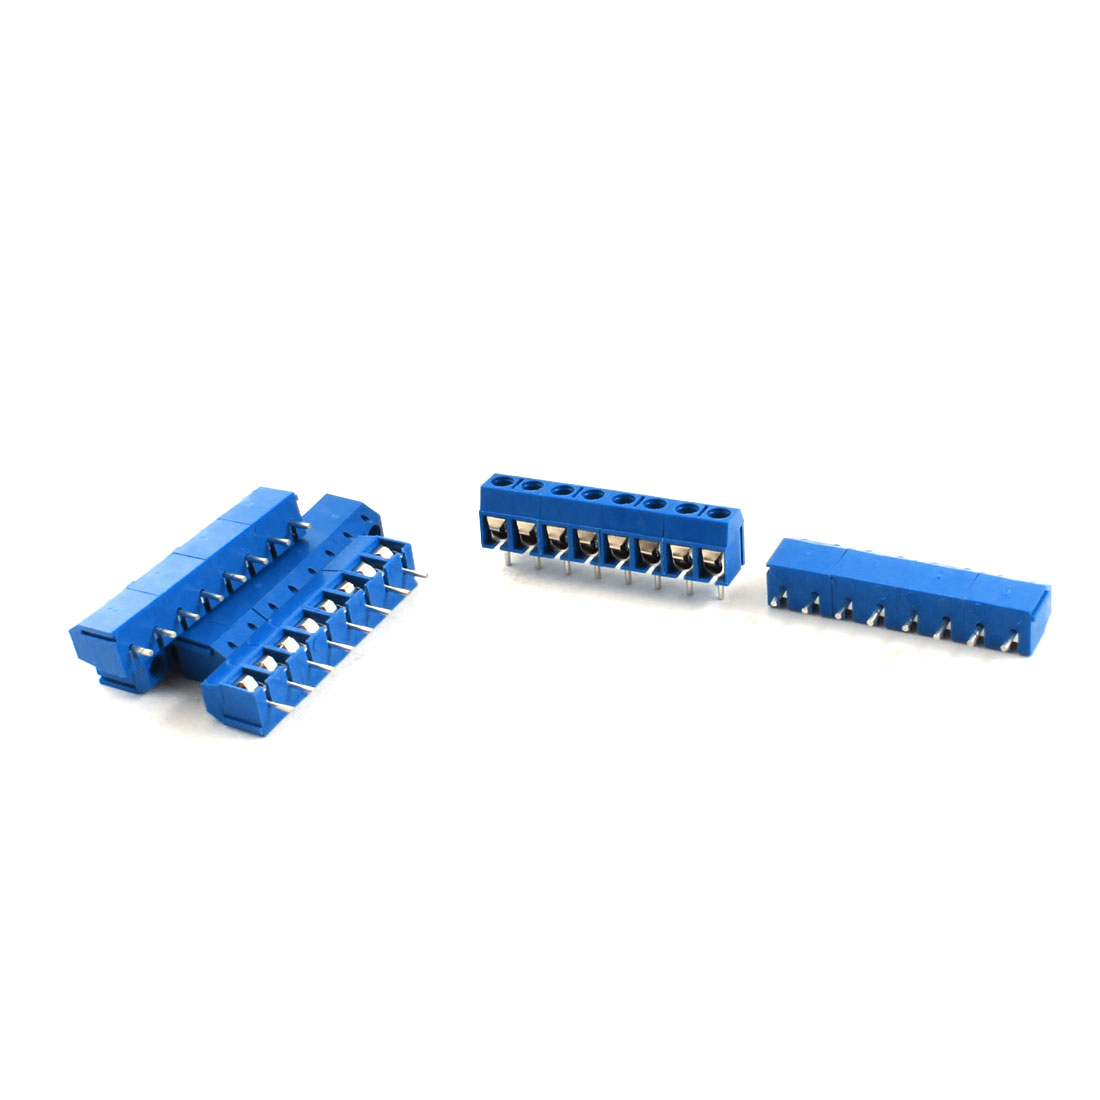 6Pcs 5.08mm Pitch 8Pin PCB Mount Power Screw Terminal Block Connector